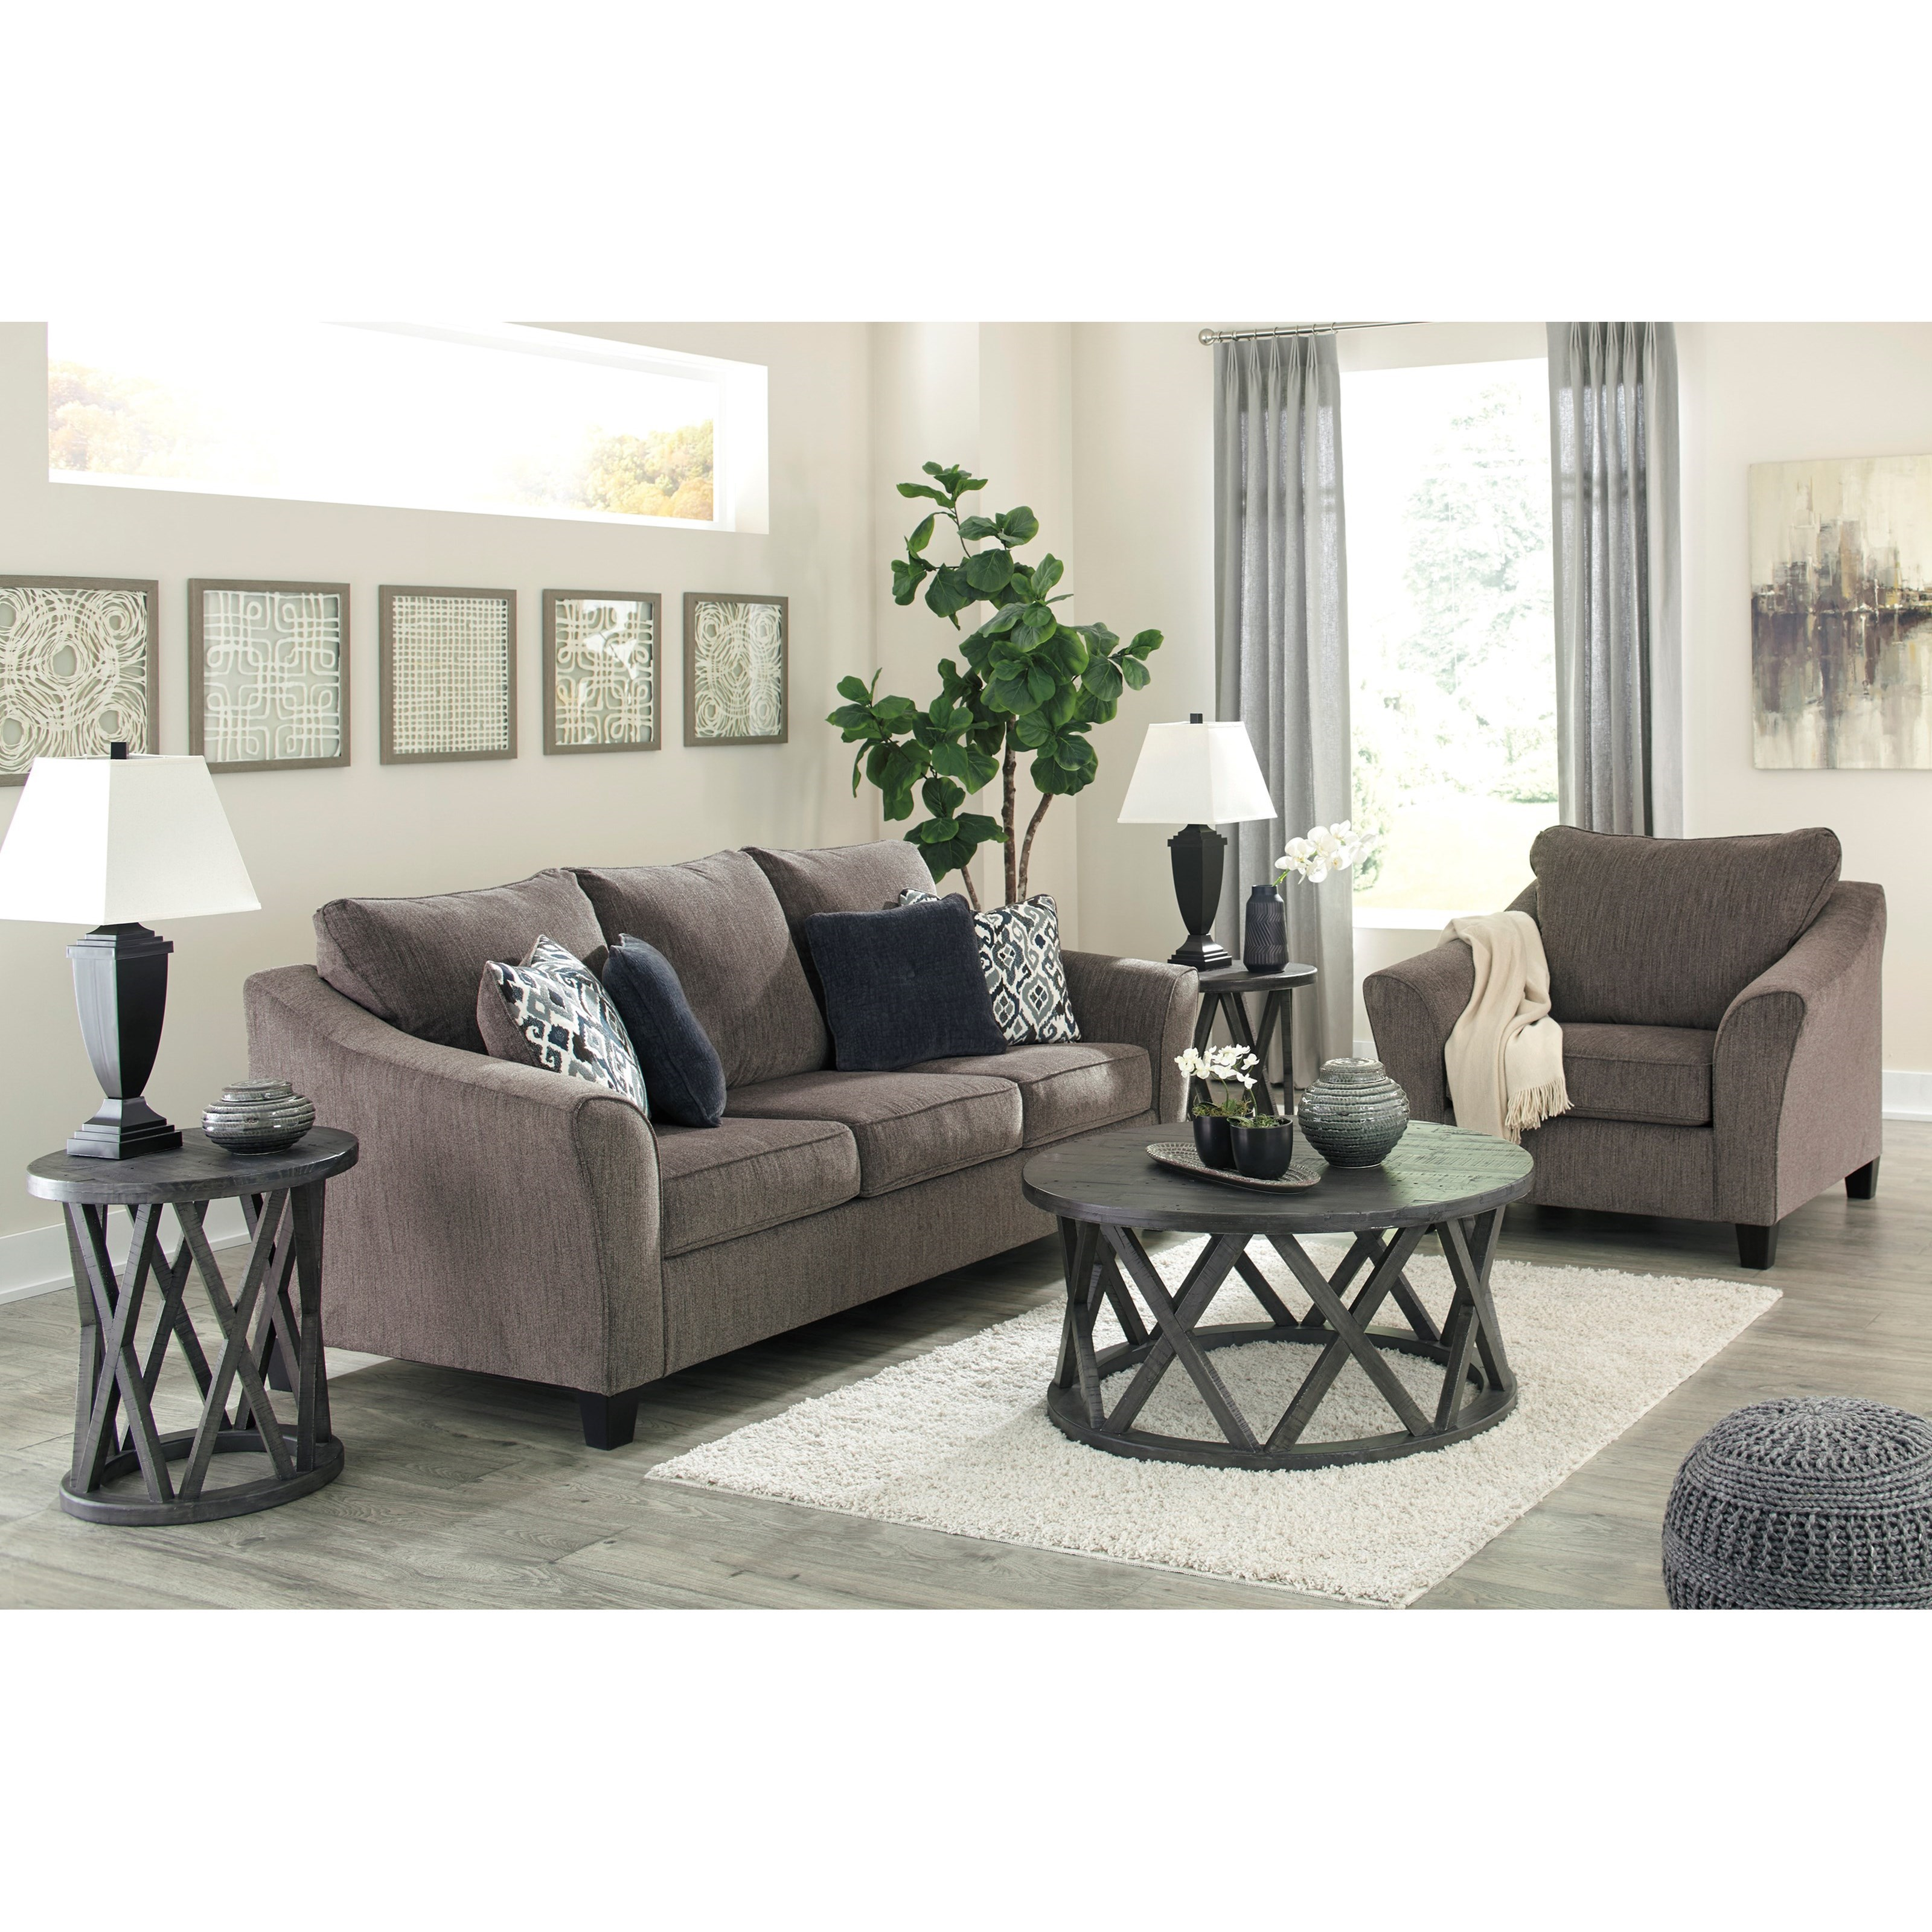 Nemoli Stationary Living Room Group by Signature Design by Ashley at Rife's Home Furniture